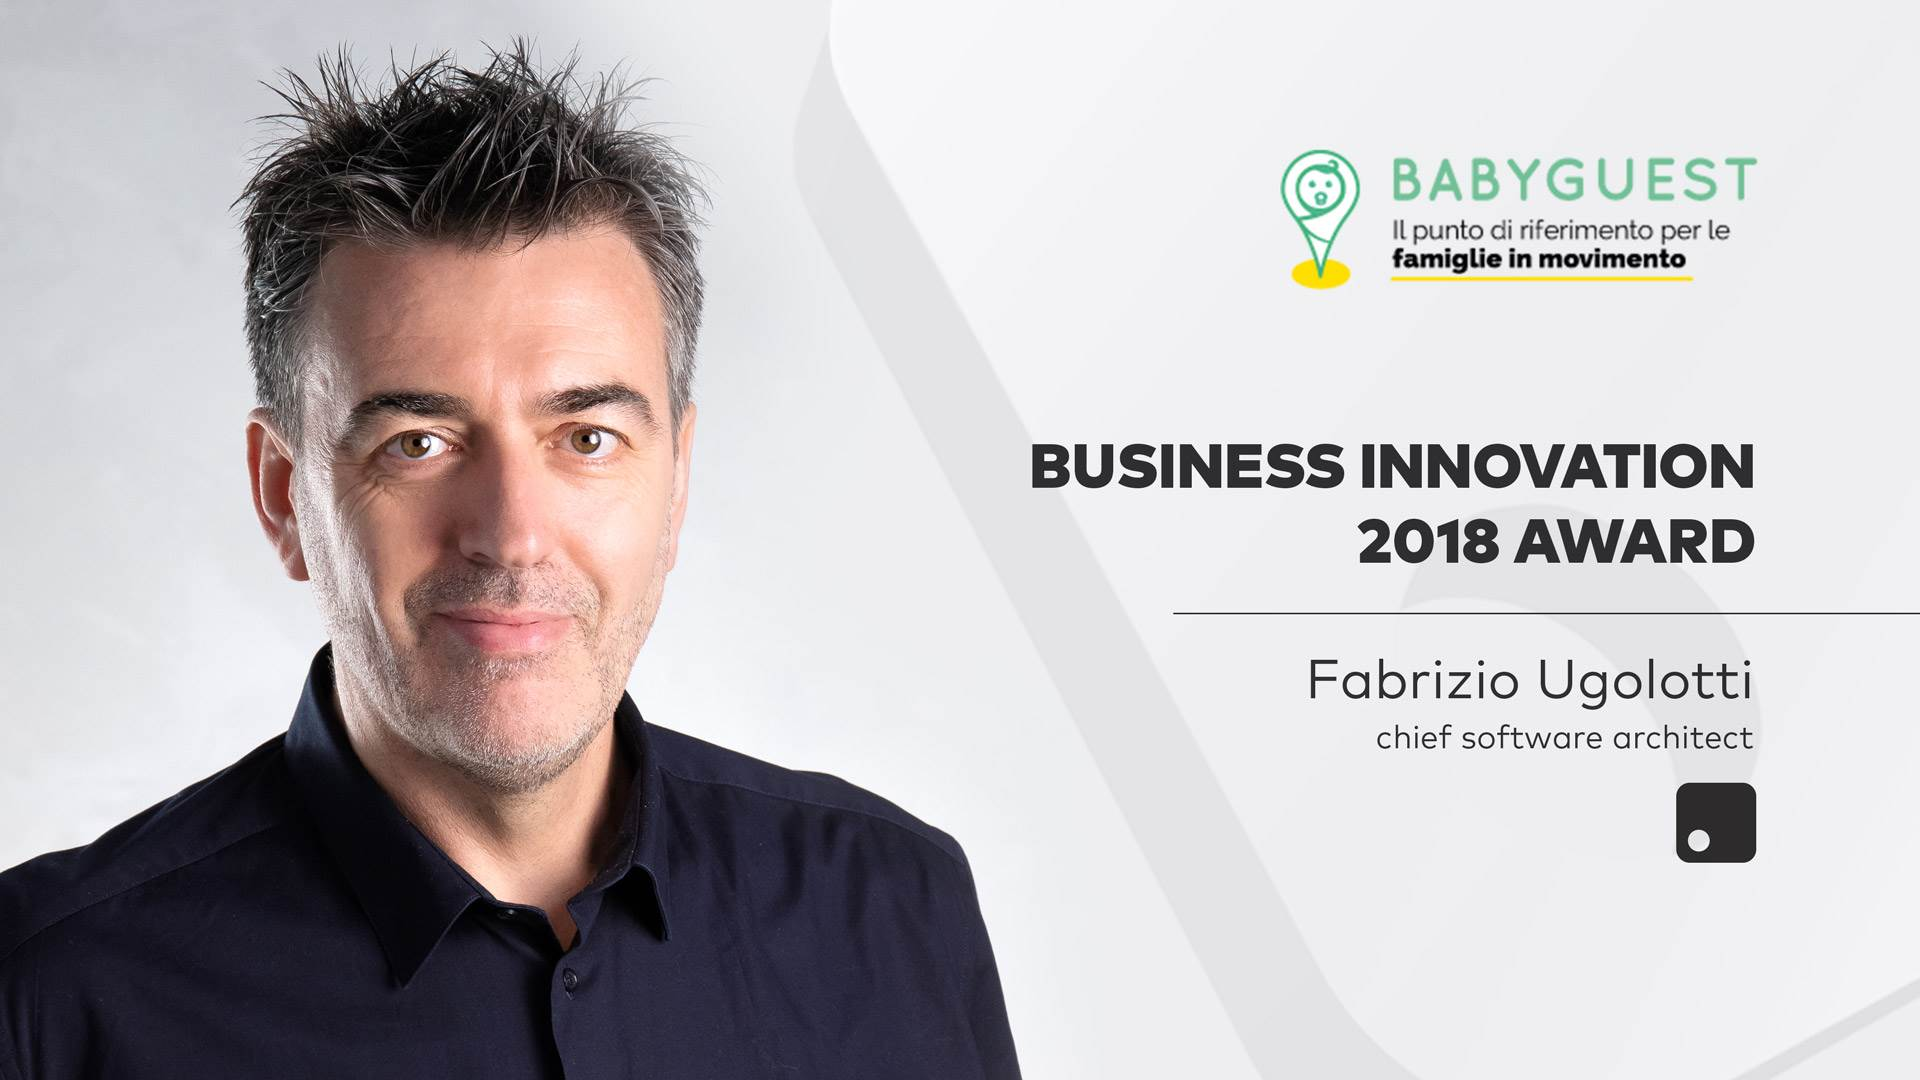 BabyGuest.com<br>Premio Business Innovation 2018